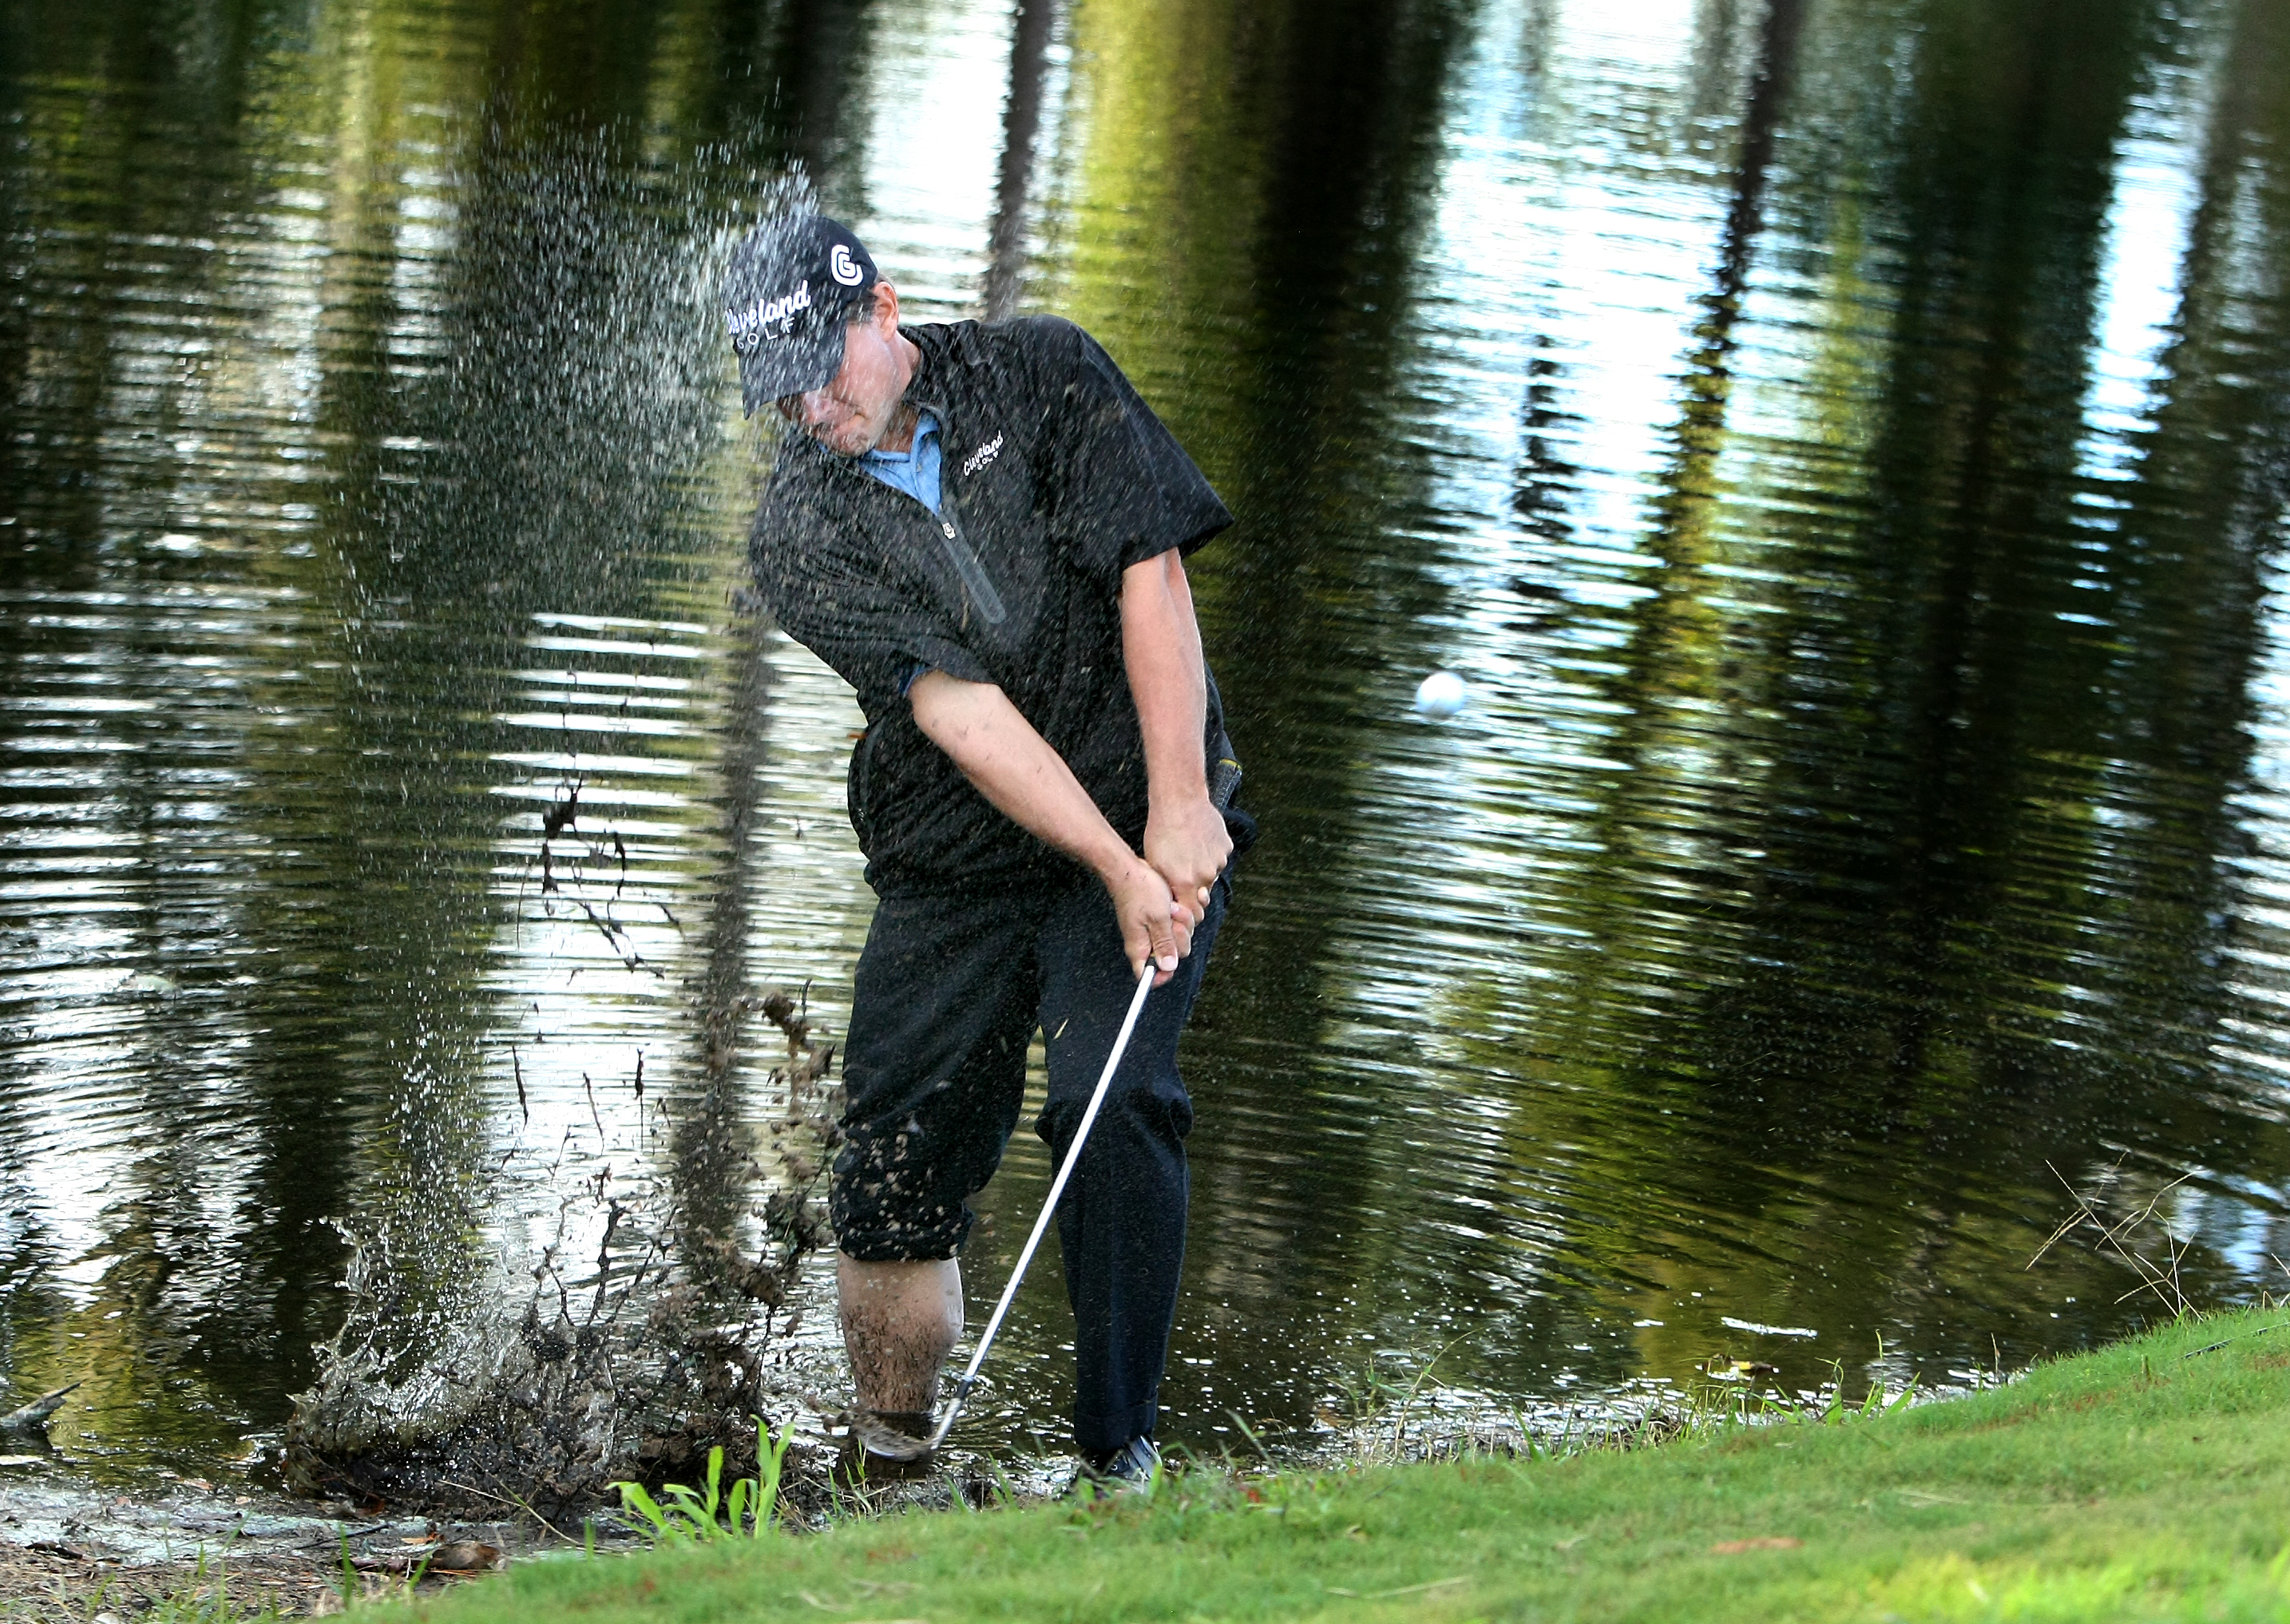 Roland Thatcher hits out of the hazard at No. 17.